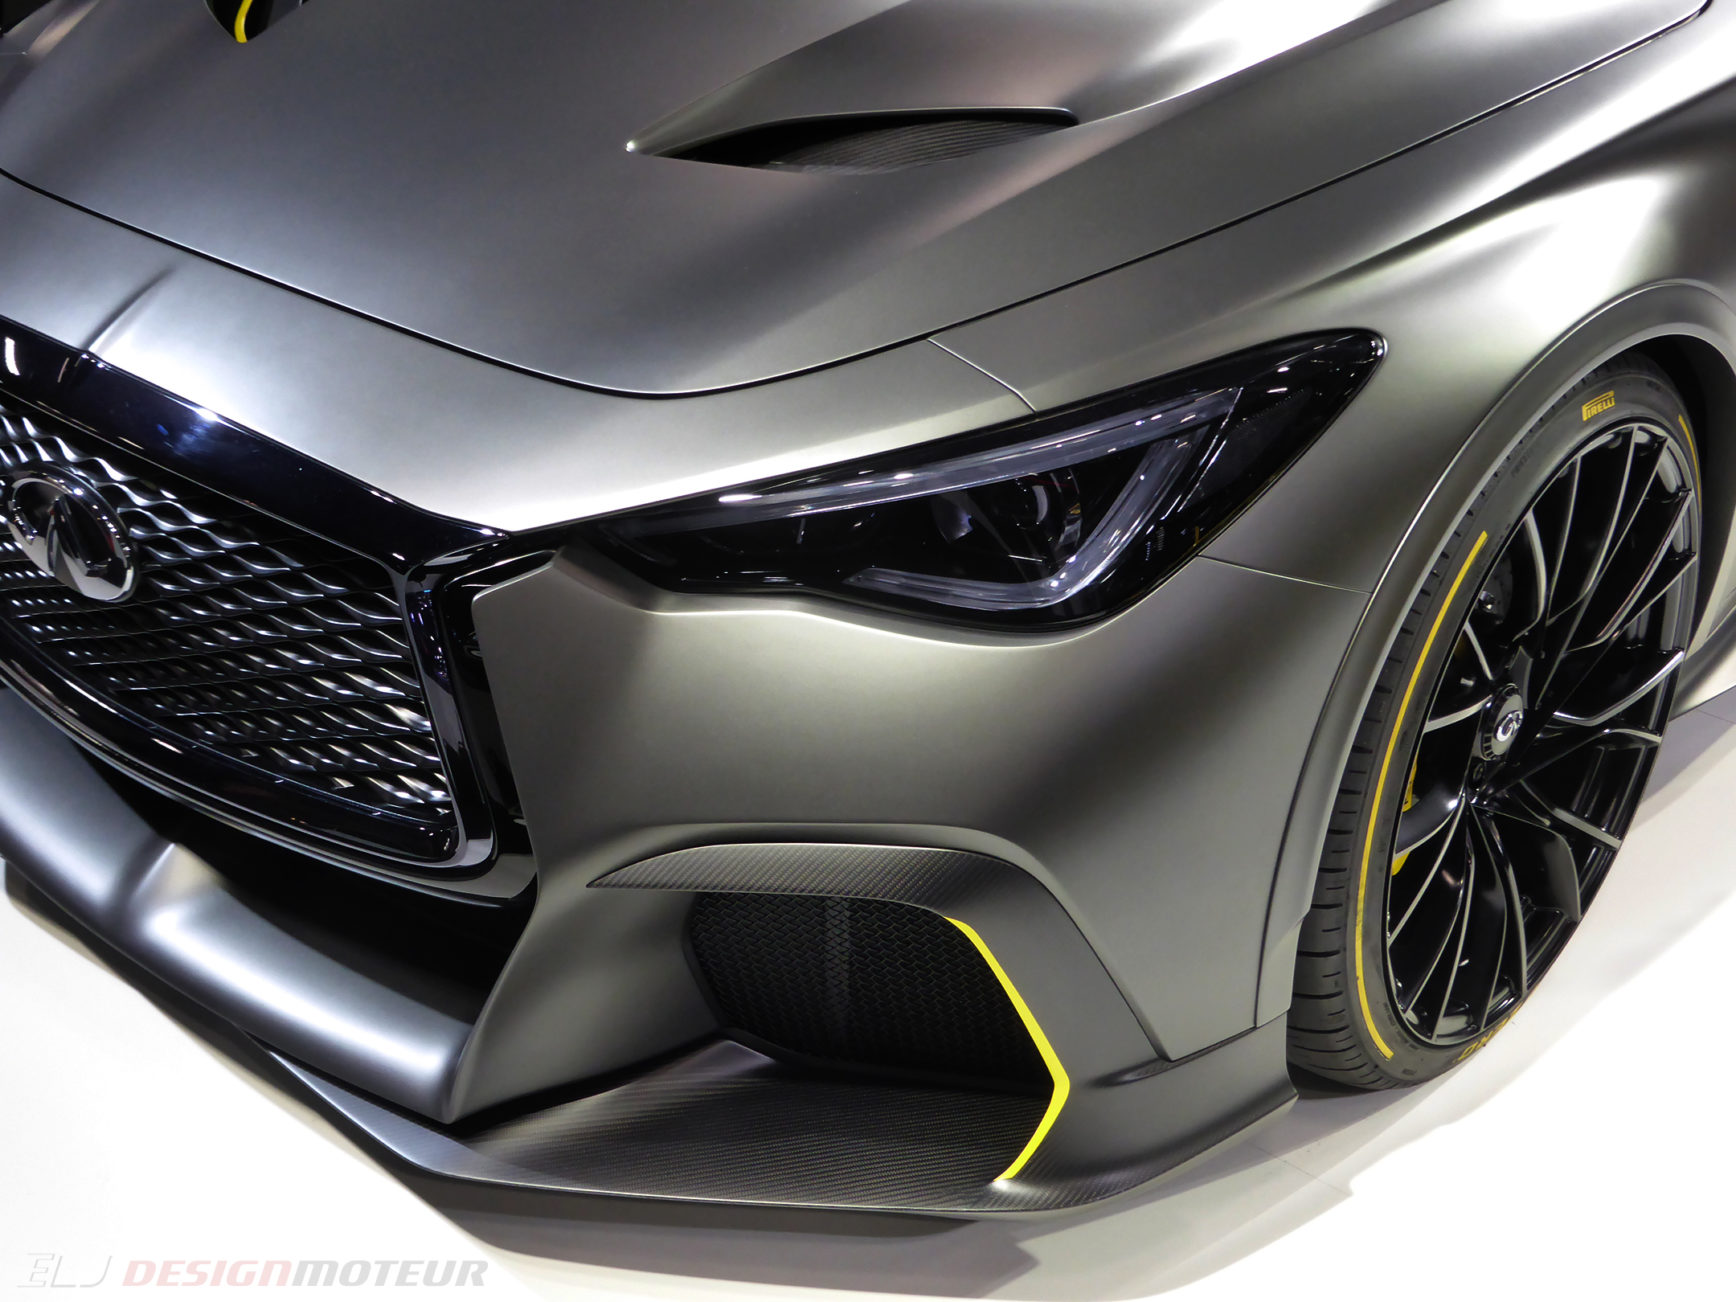 Infiniti Project Black S - front light - Paris Motor Show - 2018 - Mondial Auto - photo ELJ DESIGNMOTEUR